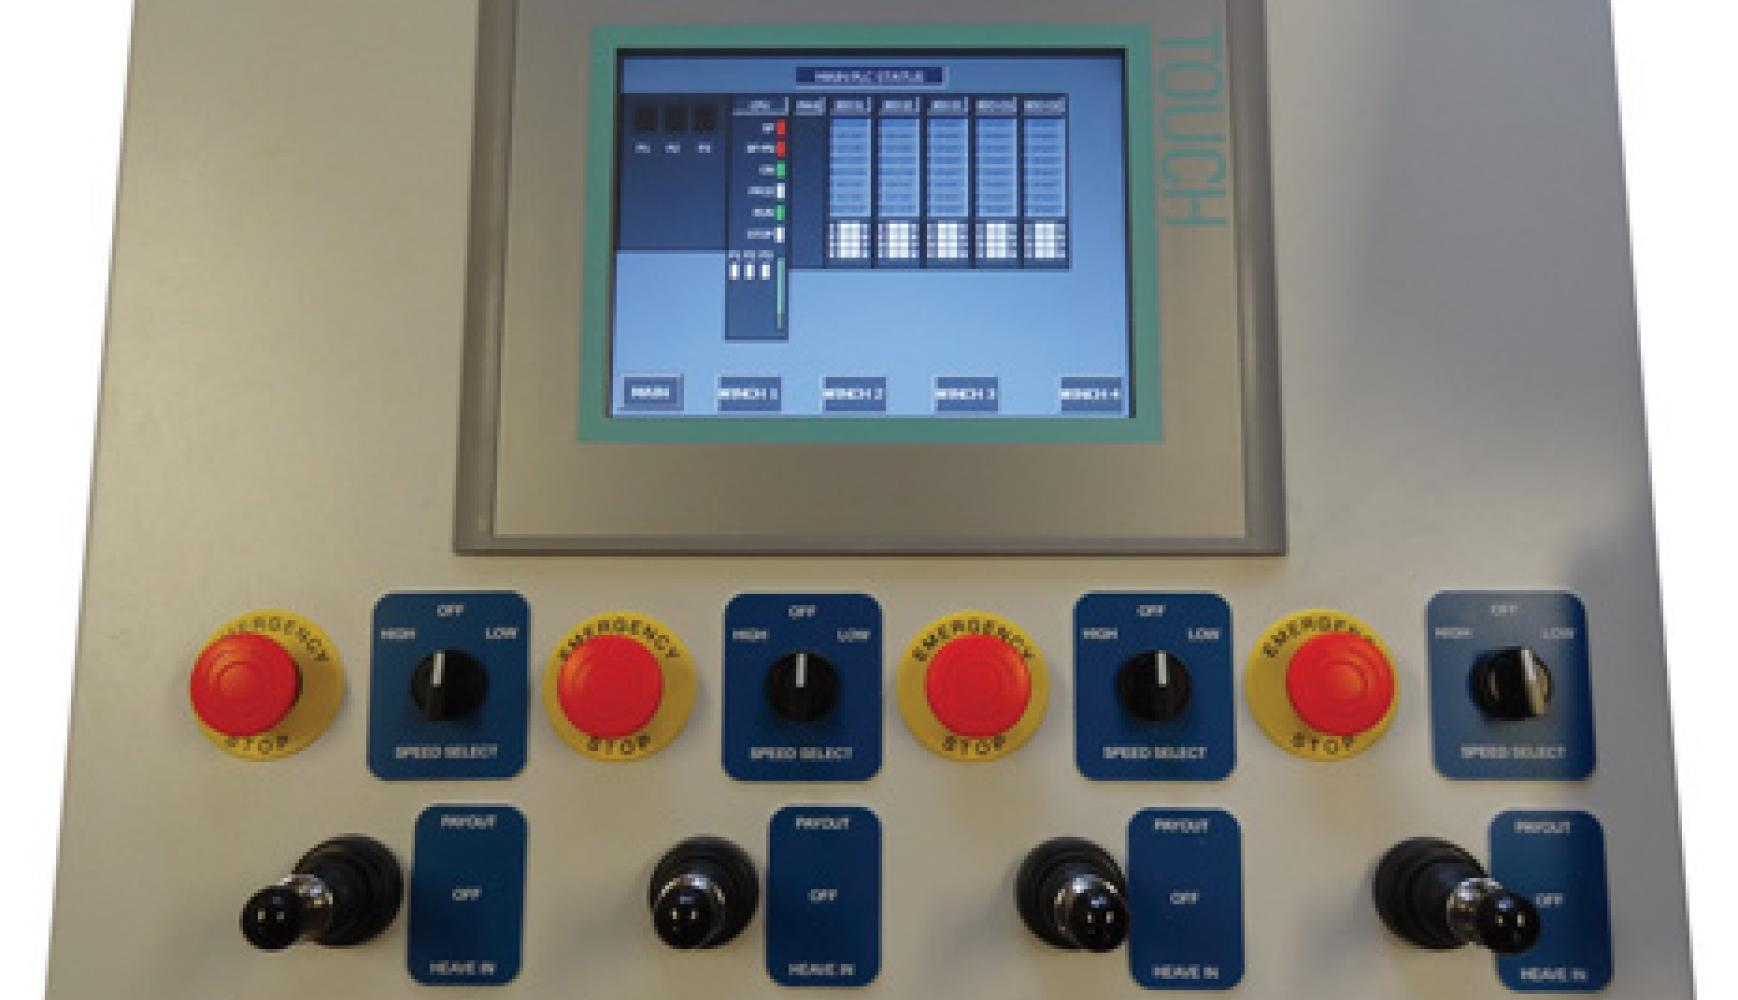 Jack-up Mooring Winch Control Console, payout display, custom